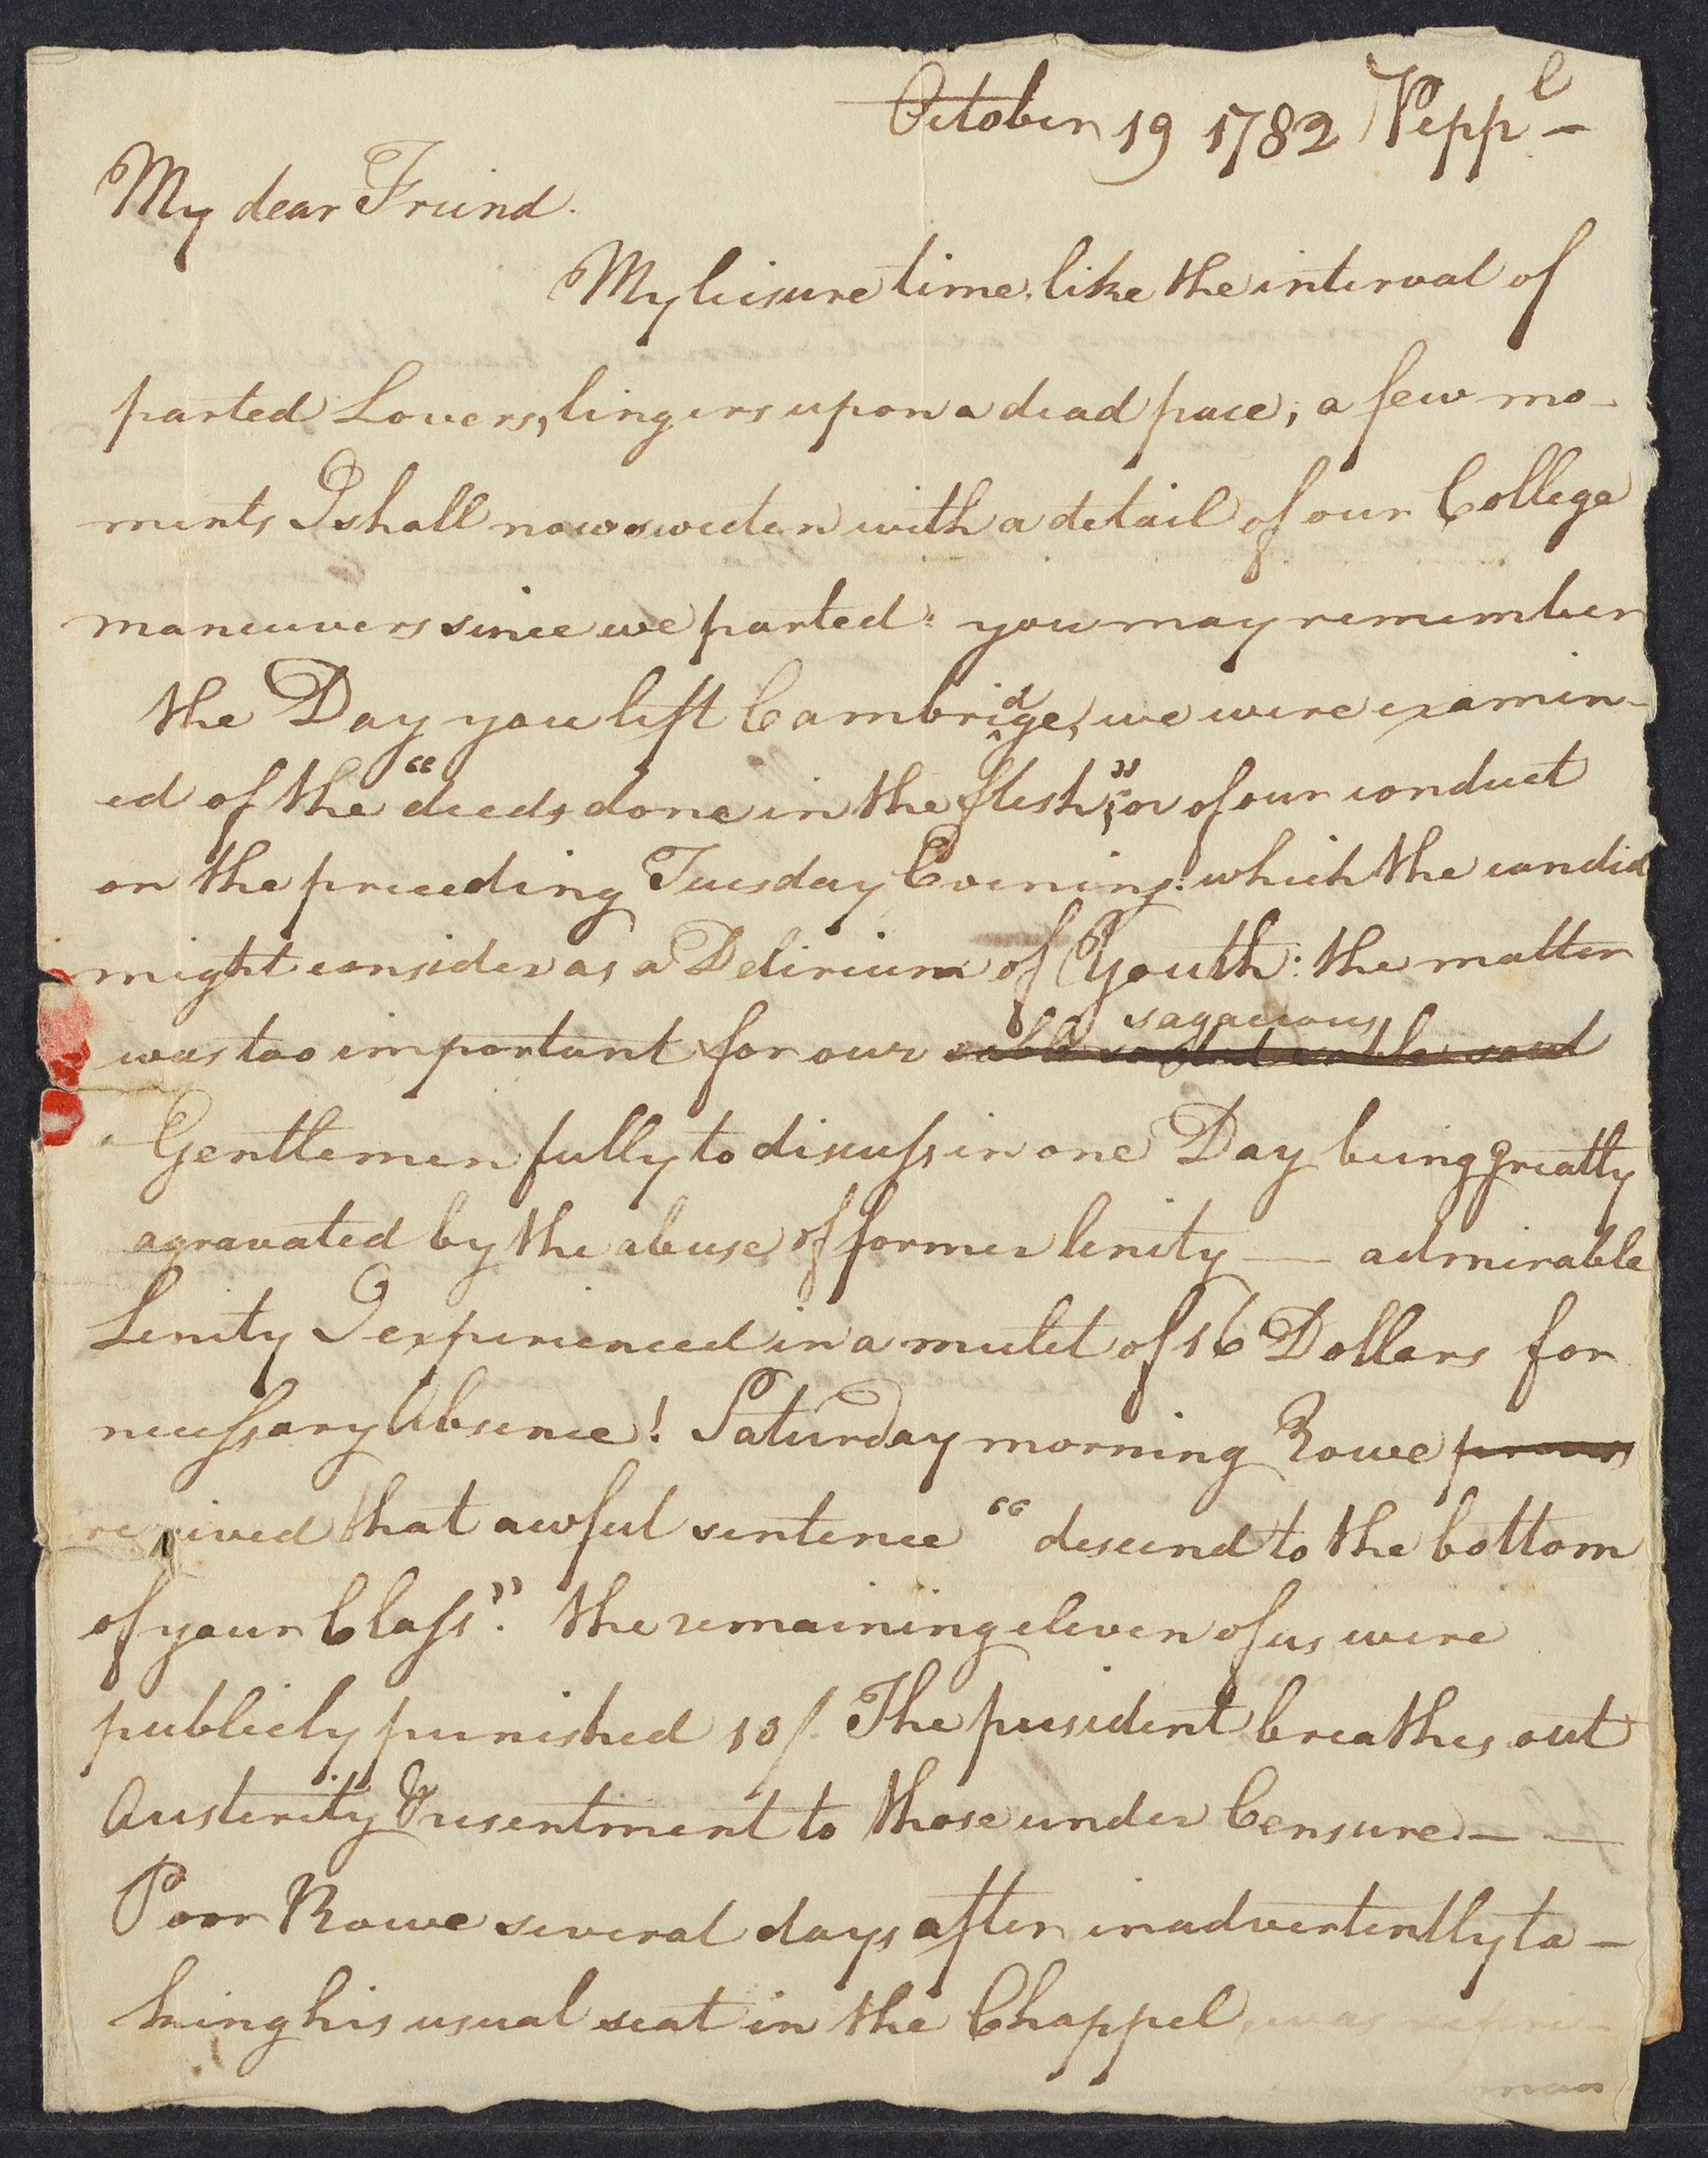 Letter from William Prescott to Oliver Prescott, 1782 October 19